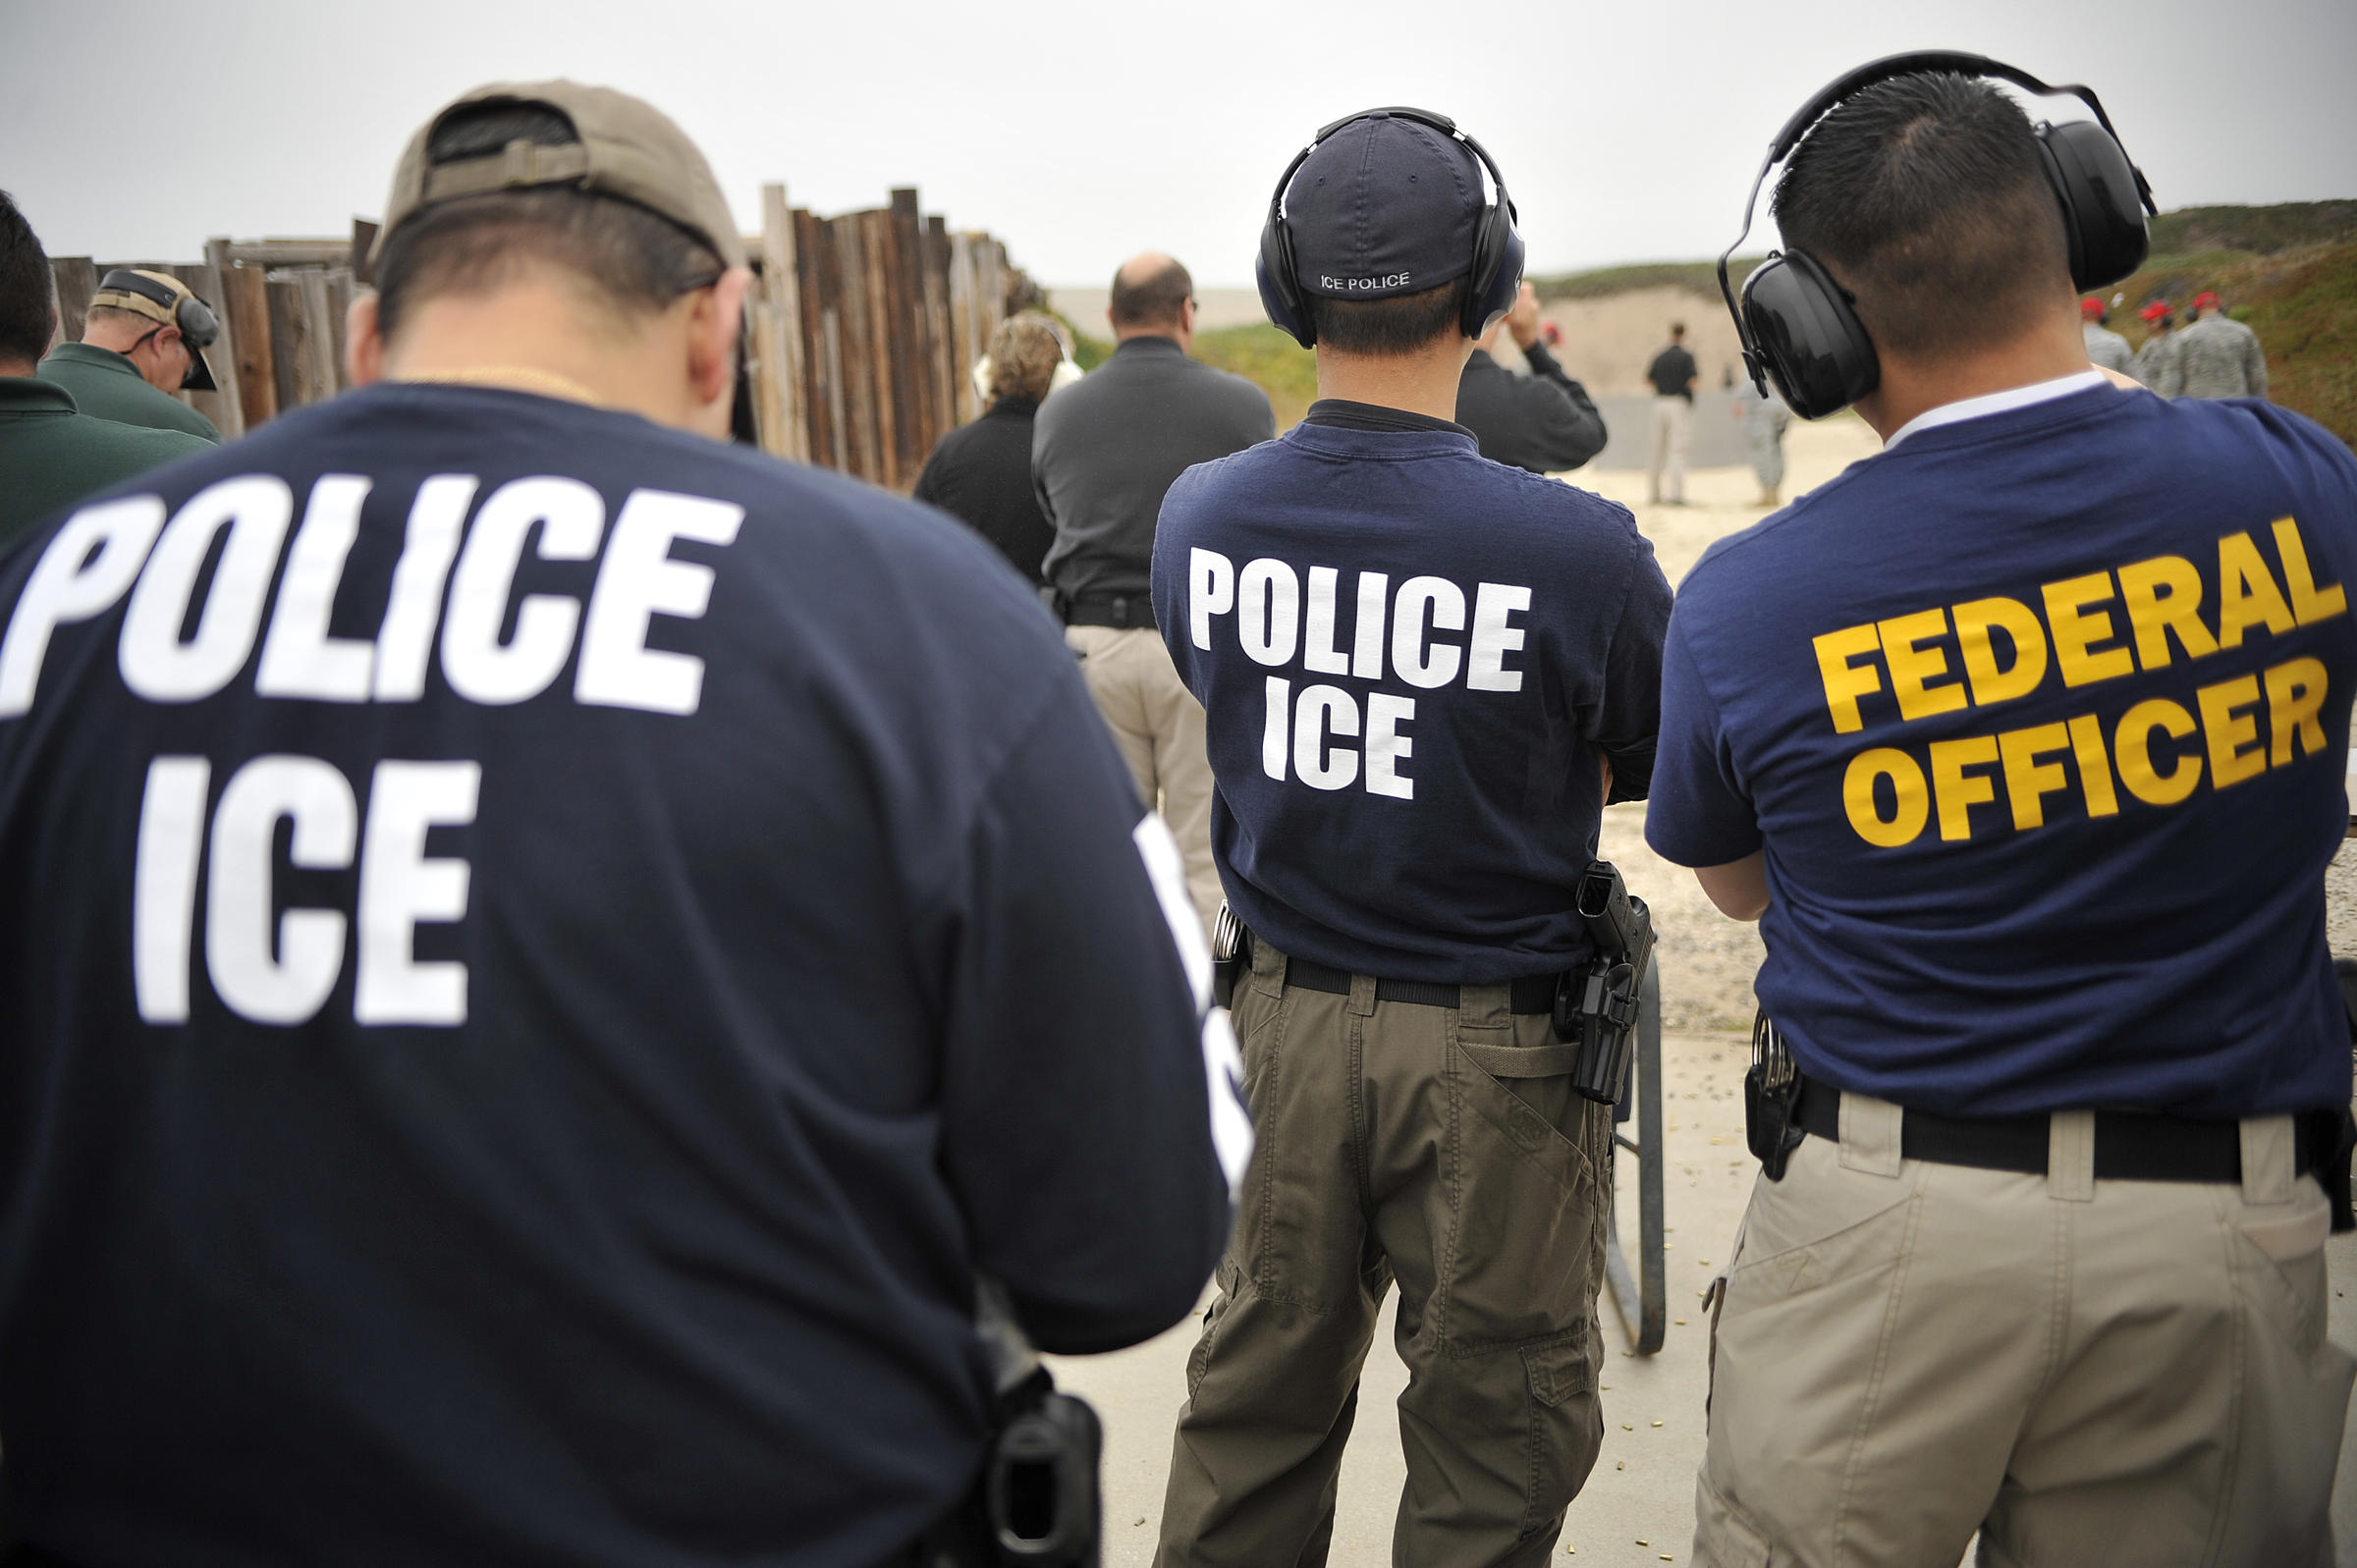 Chaldean advocates working fast to prevent deportations to ...